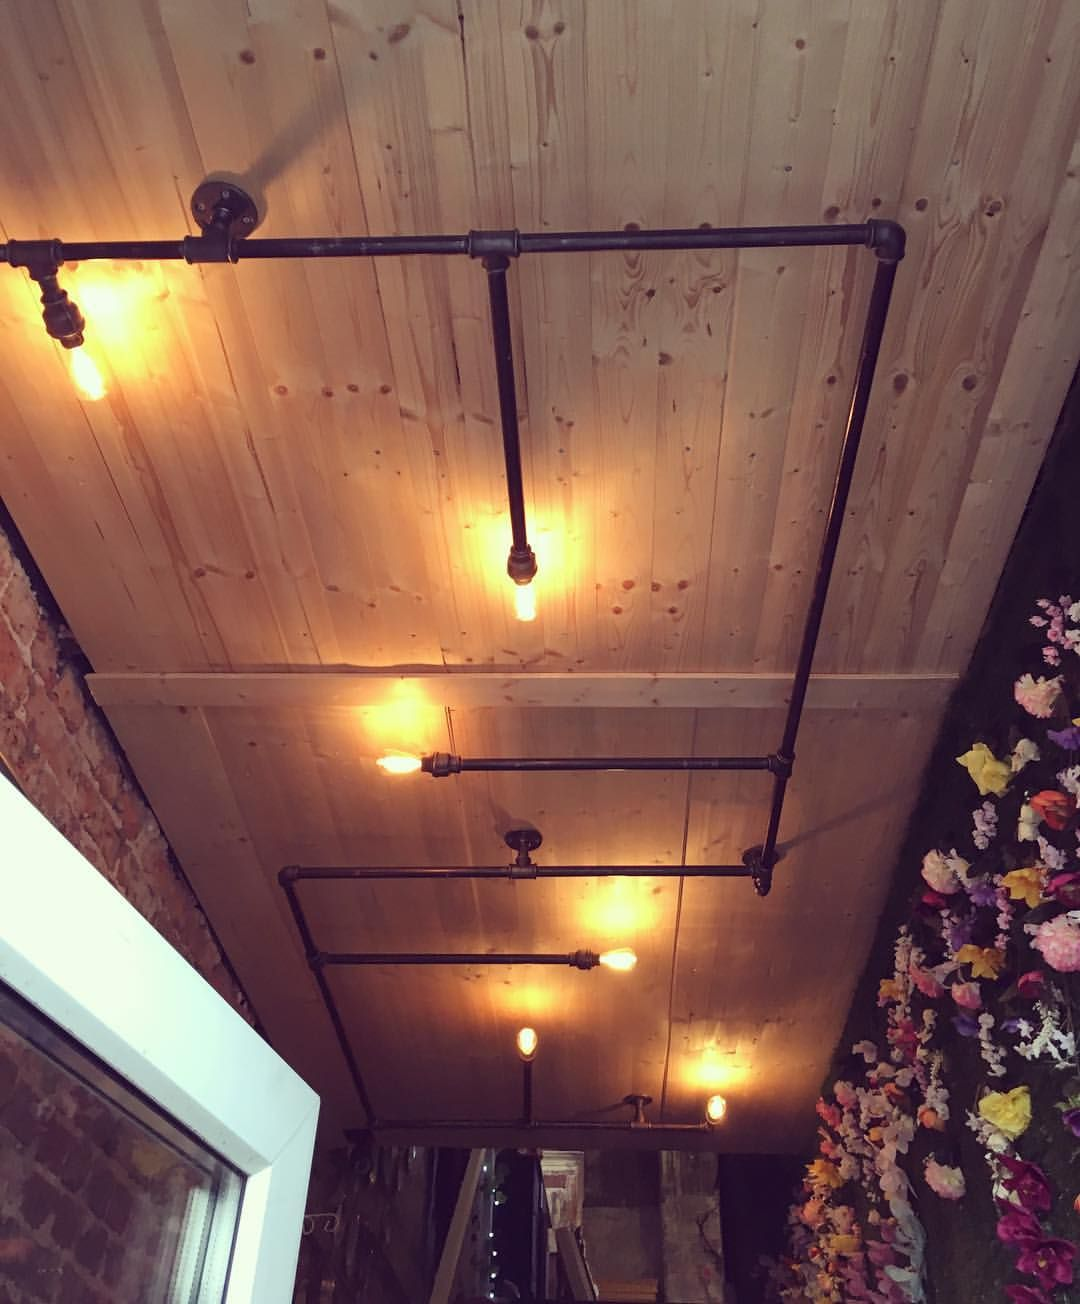 diy pipe lighting. Stephen Perry On Instagram: \u201cThis Industrial Style Pipe Light Is The Biggest Piece I\u0027ve Made So Far. I\u0027m Pleased With Finished Product. Diy Lighting T